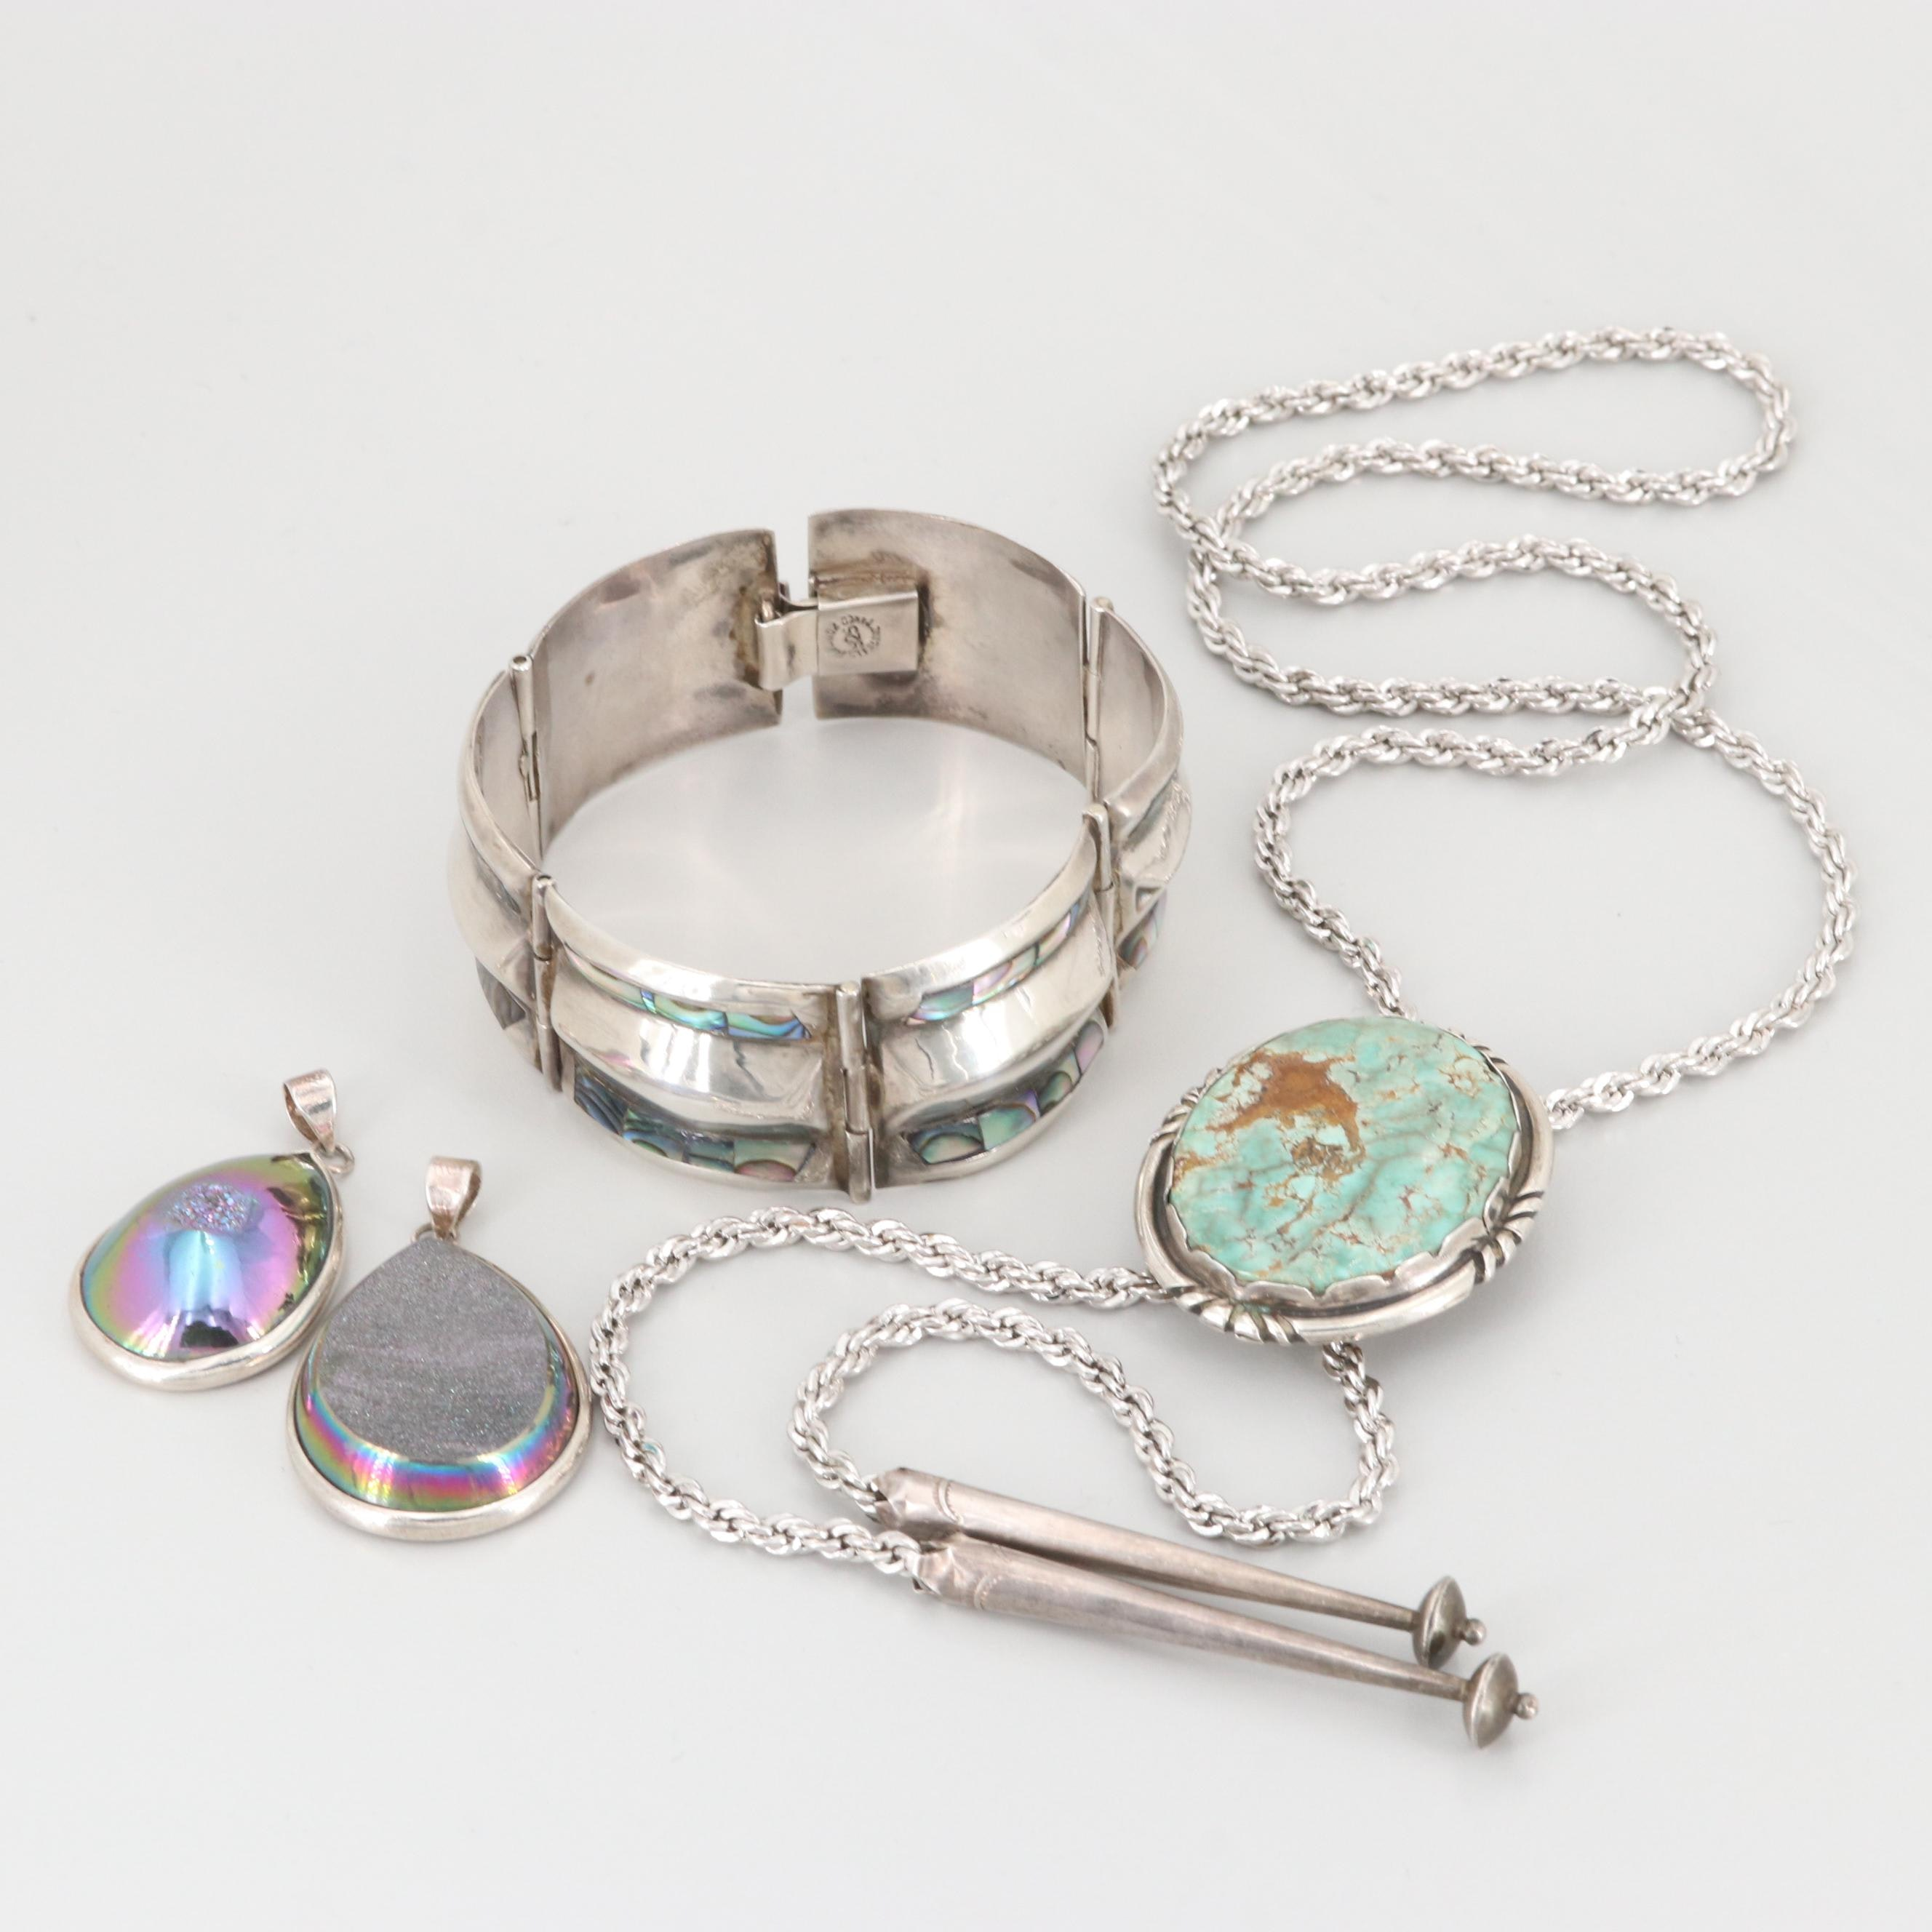 Assorted Sterling Silver Jewelry Including Turquoise, Abalone and Druzy